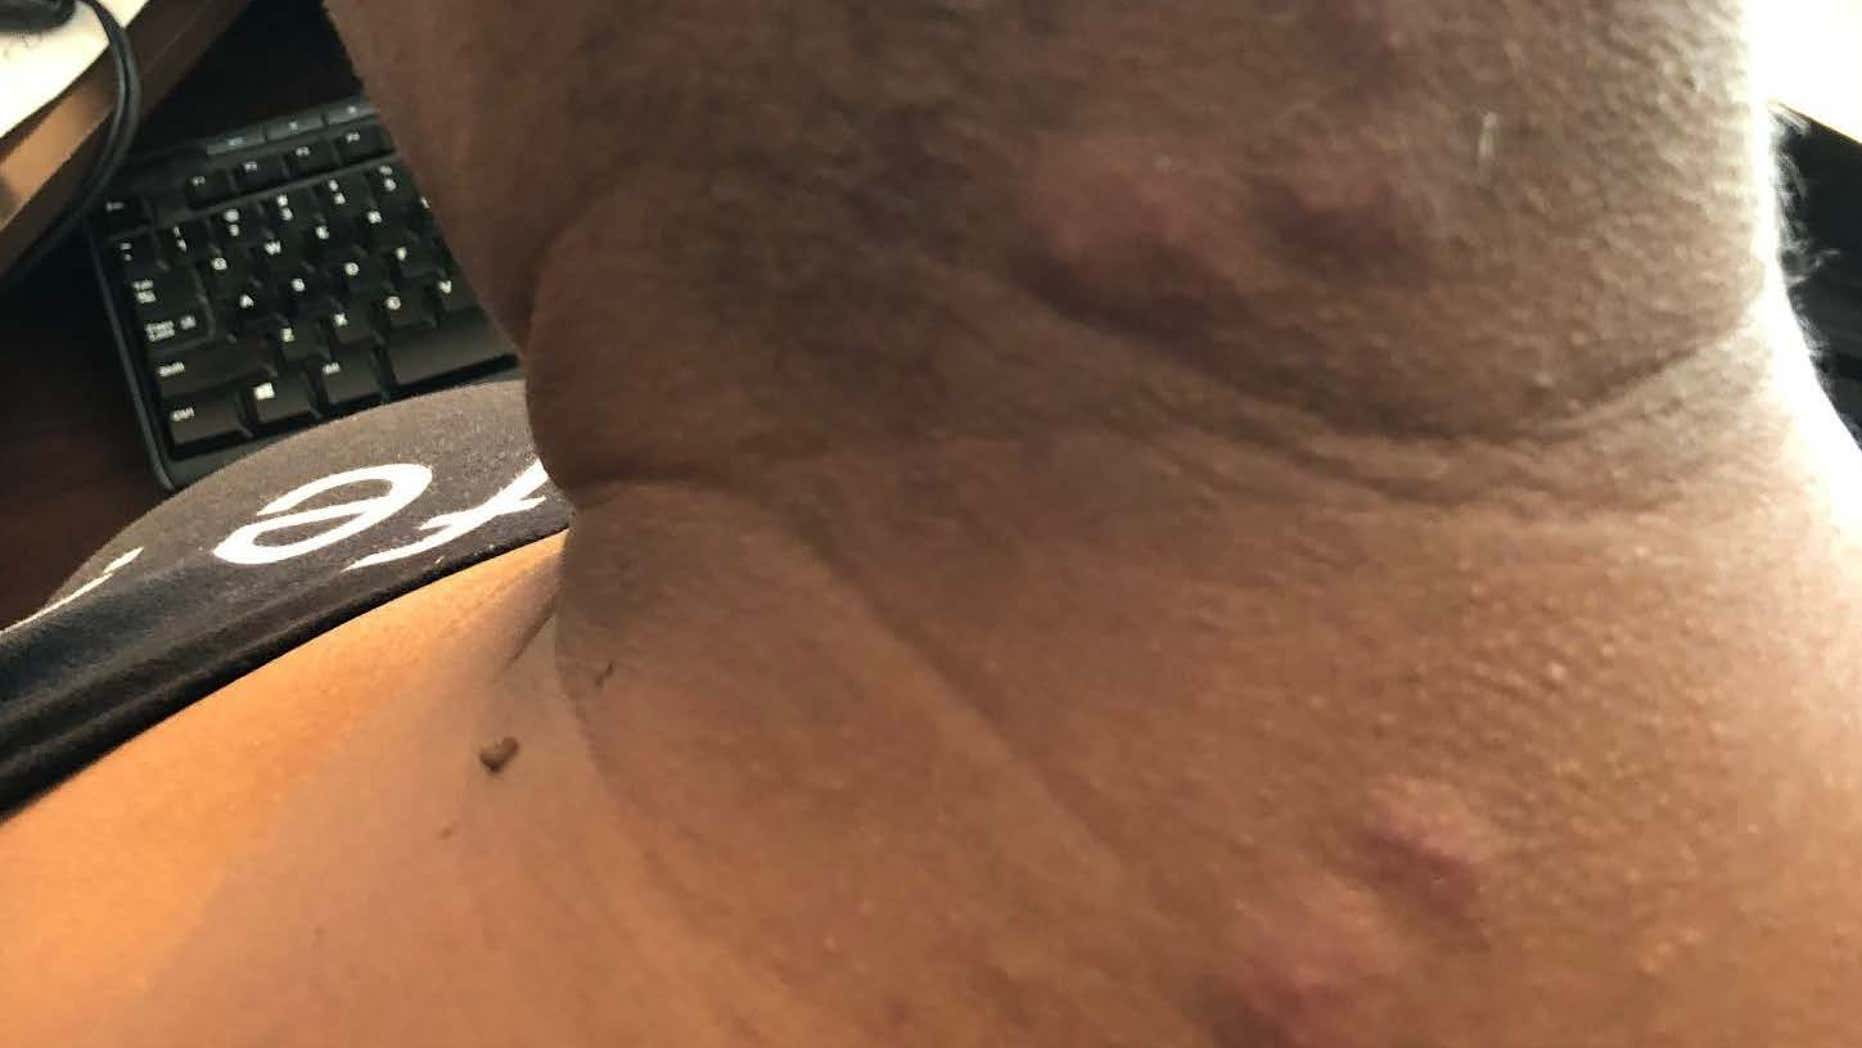 The guest claims she suffered physical and emotional damage after waking up at Disneyland Hotel covered in bedbug bites<br>